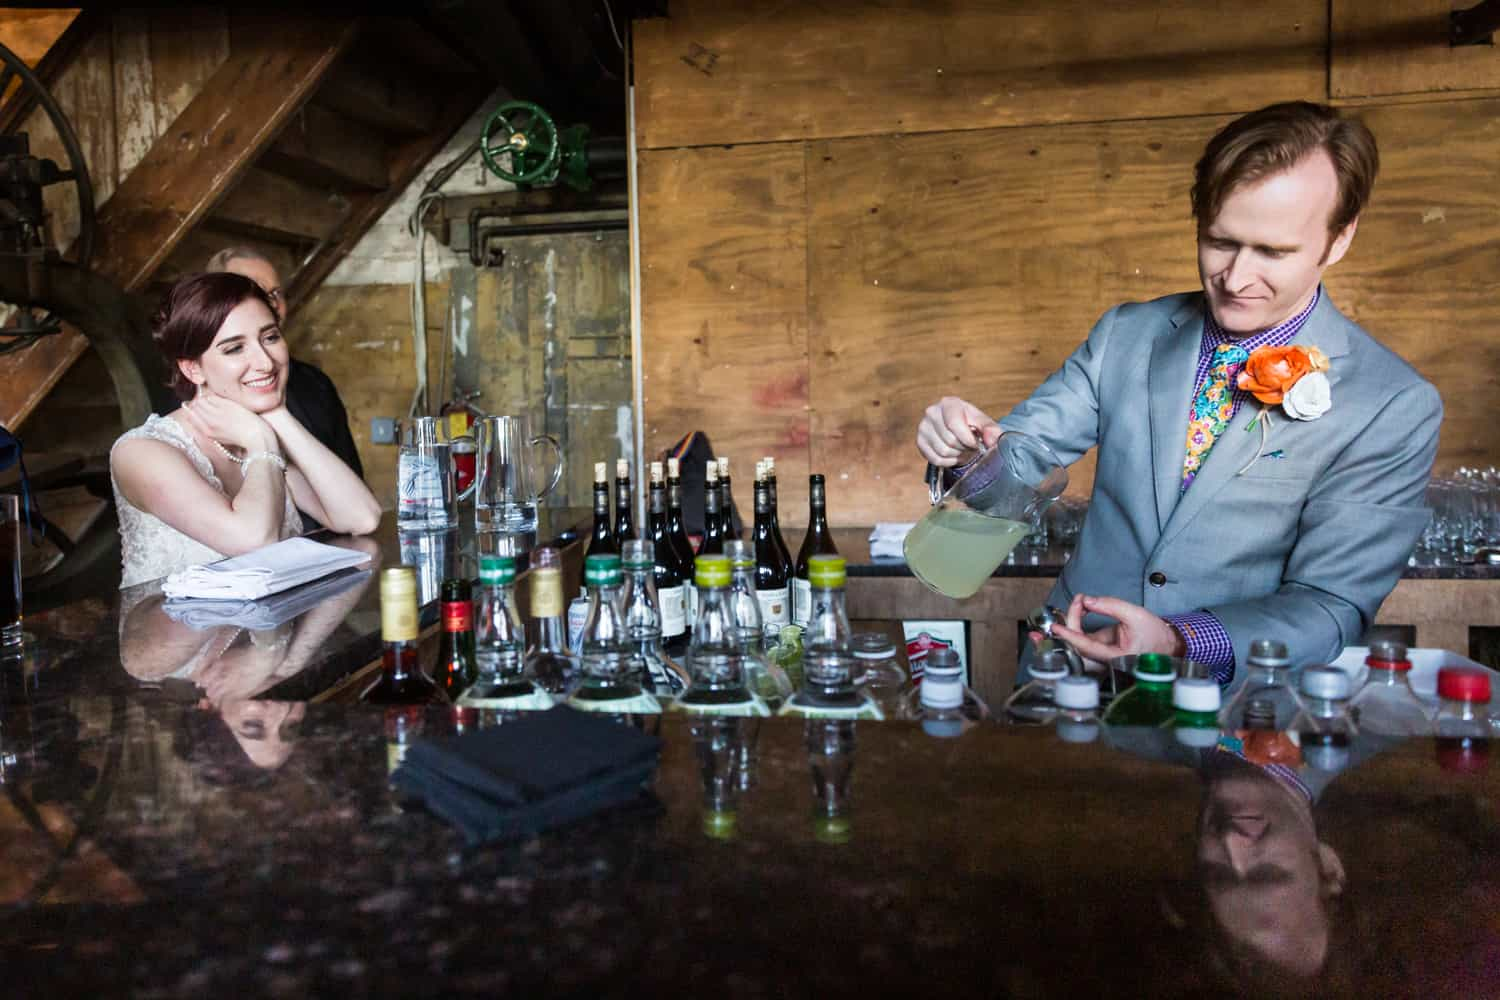 Groom preparing cocktail for bride at a Greenpoint Loft wedding